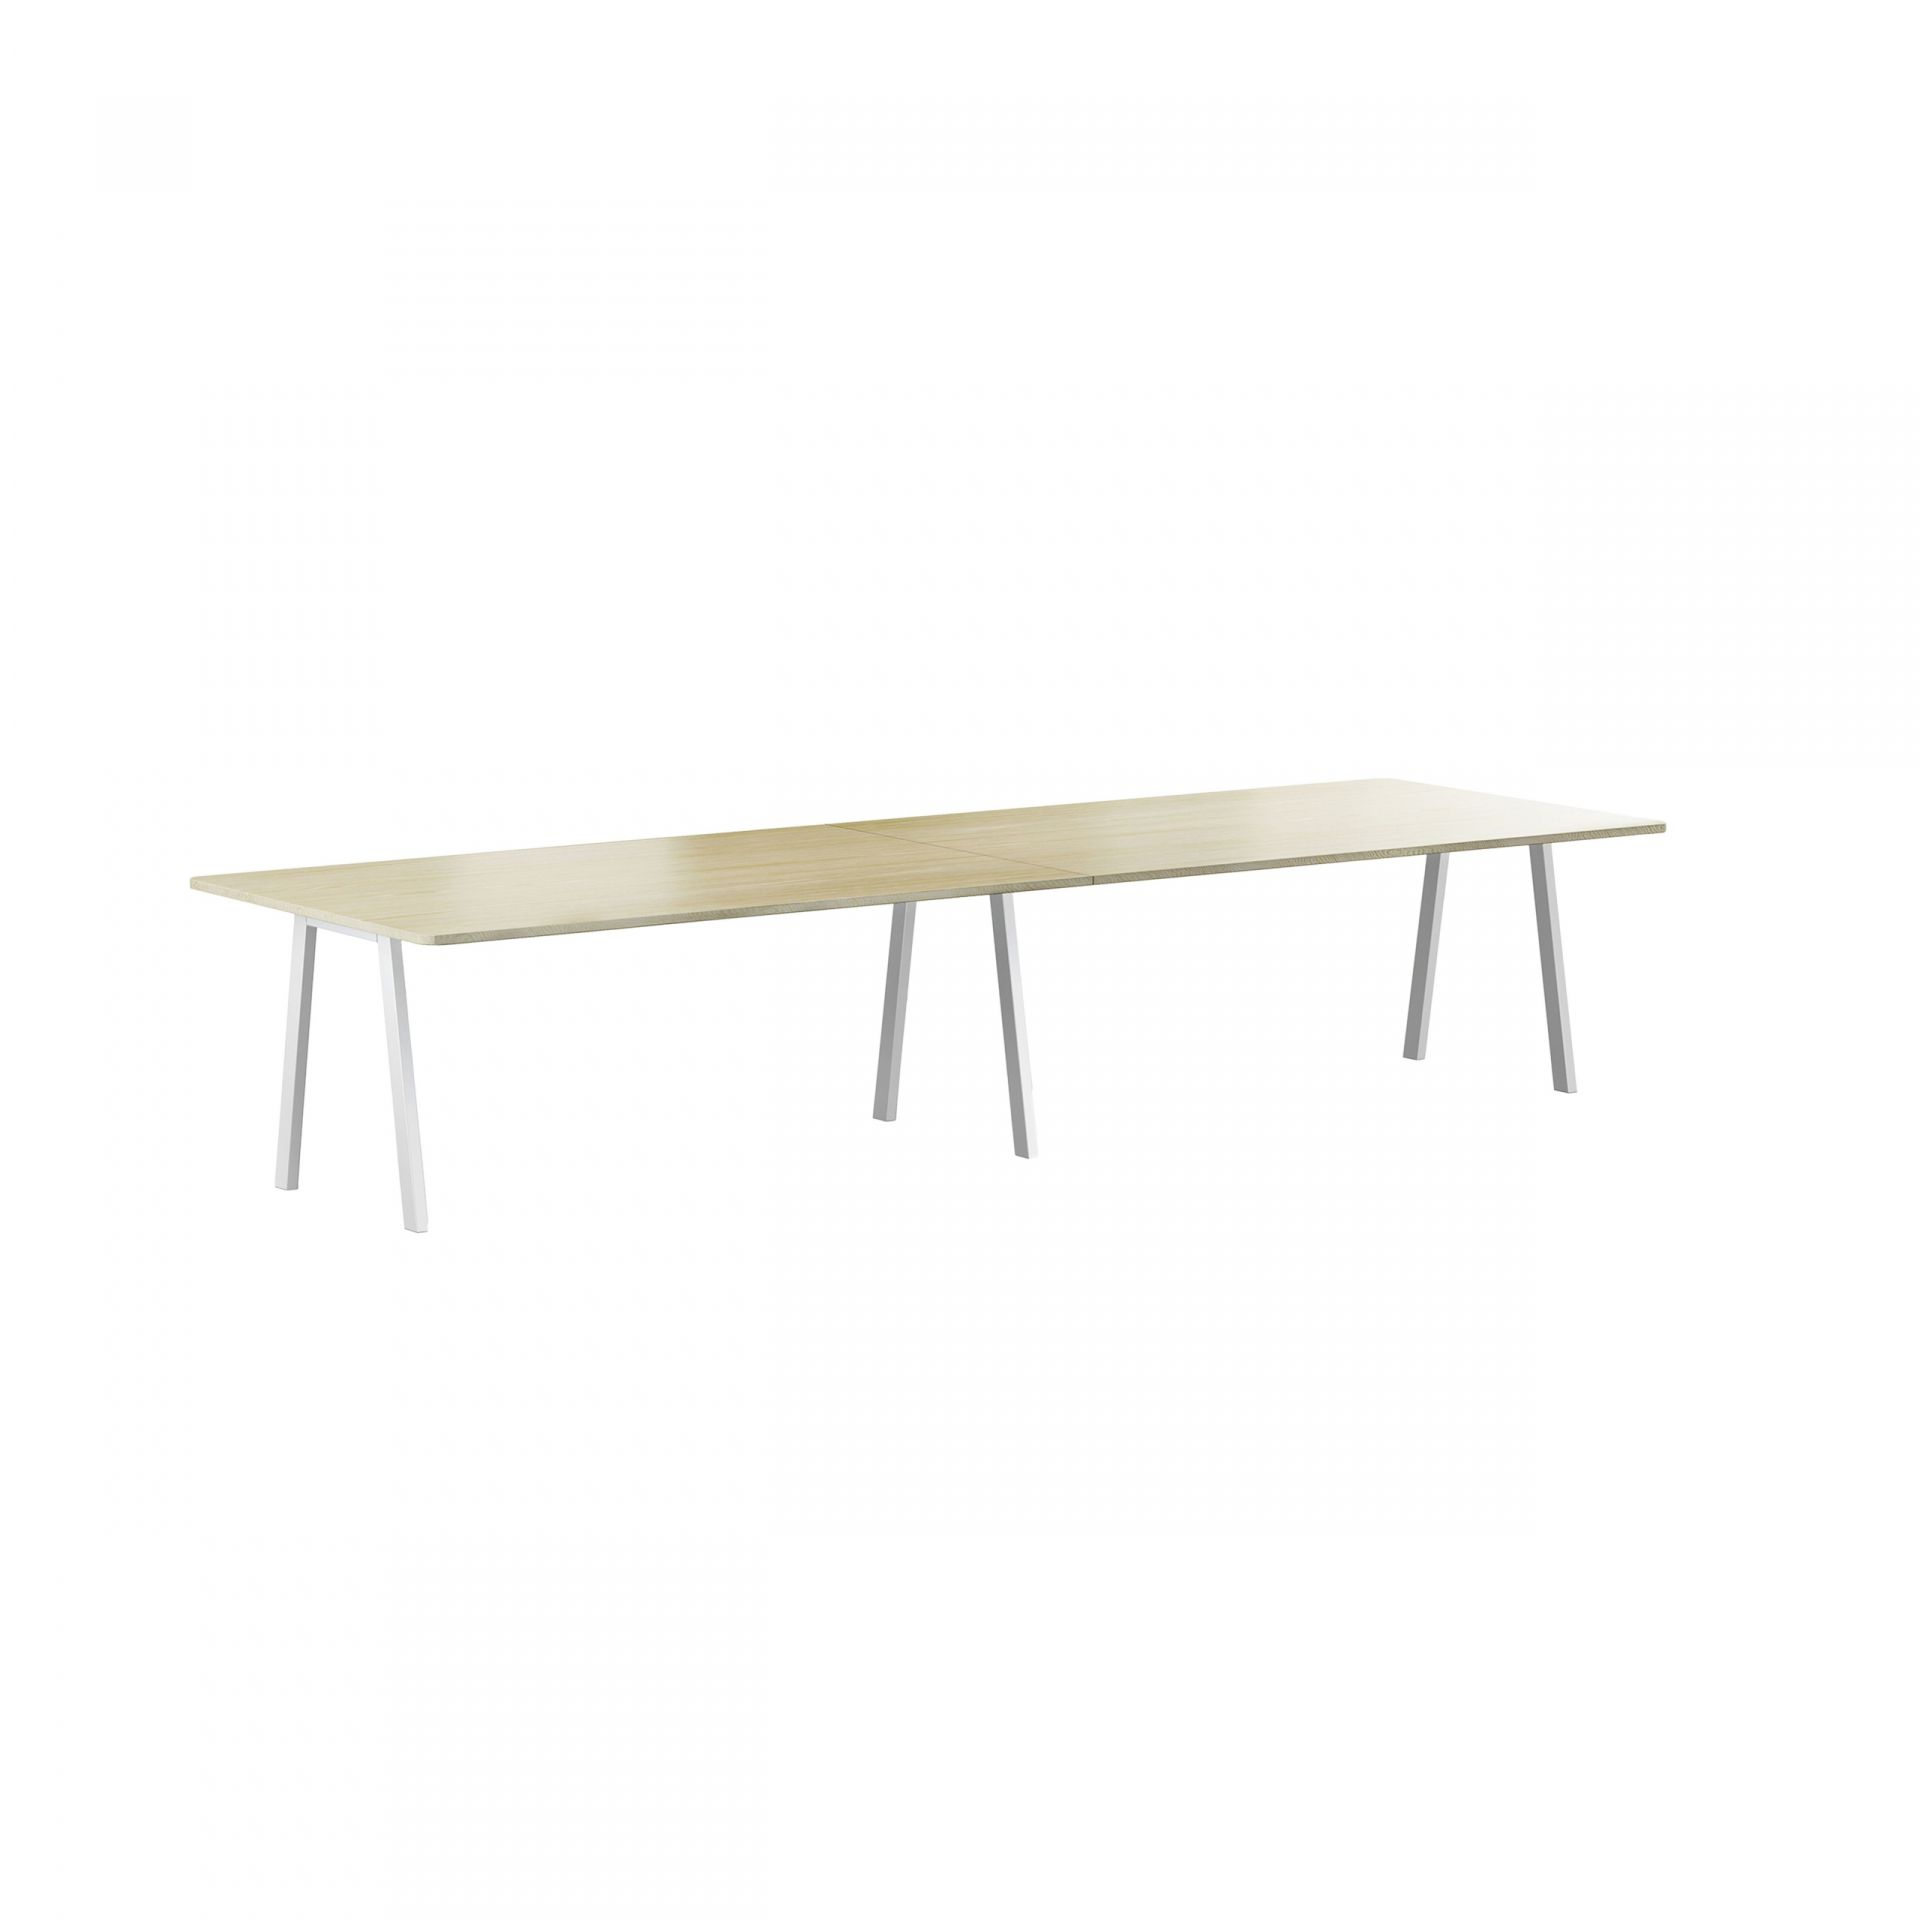 Collaborate Table with metal legs product image 1